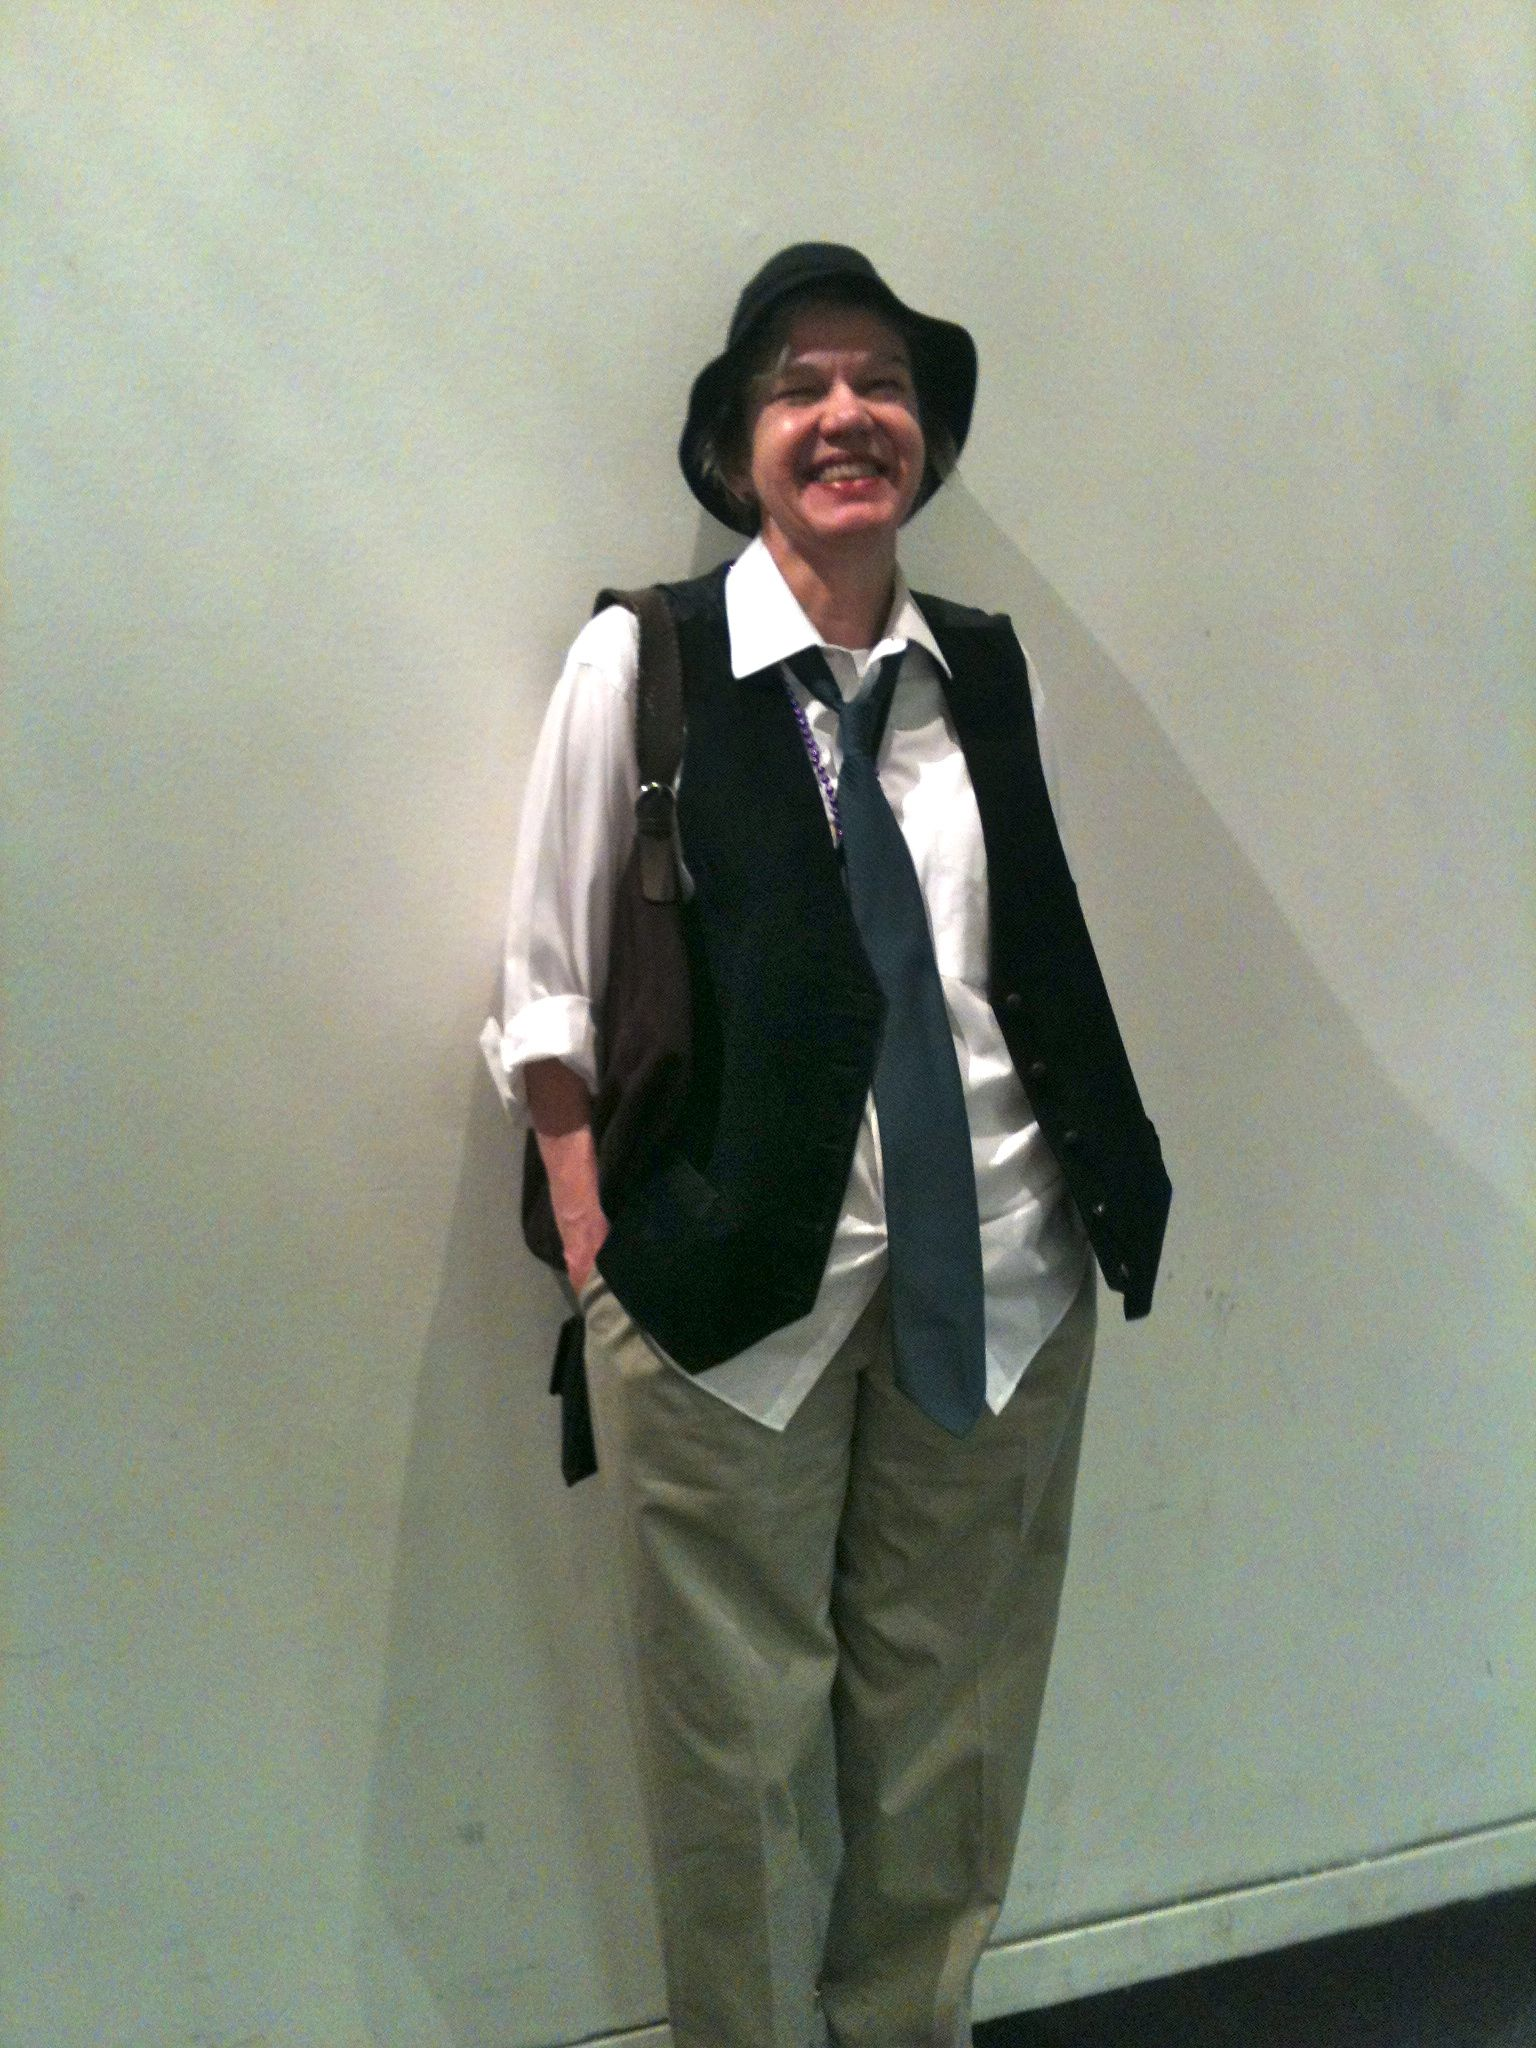 That's me as Annie Hall, thanks to Nicole.